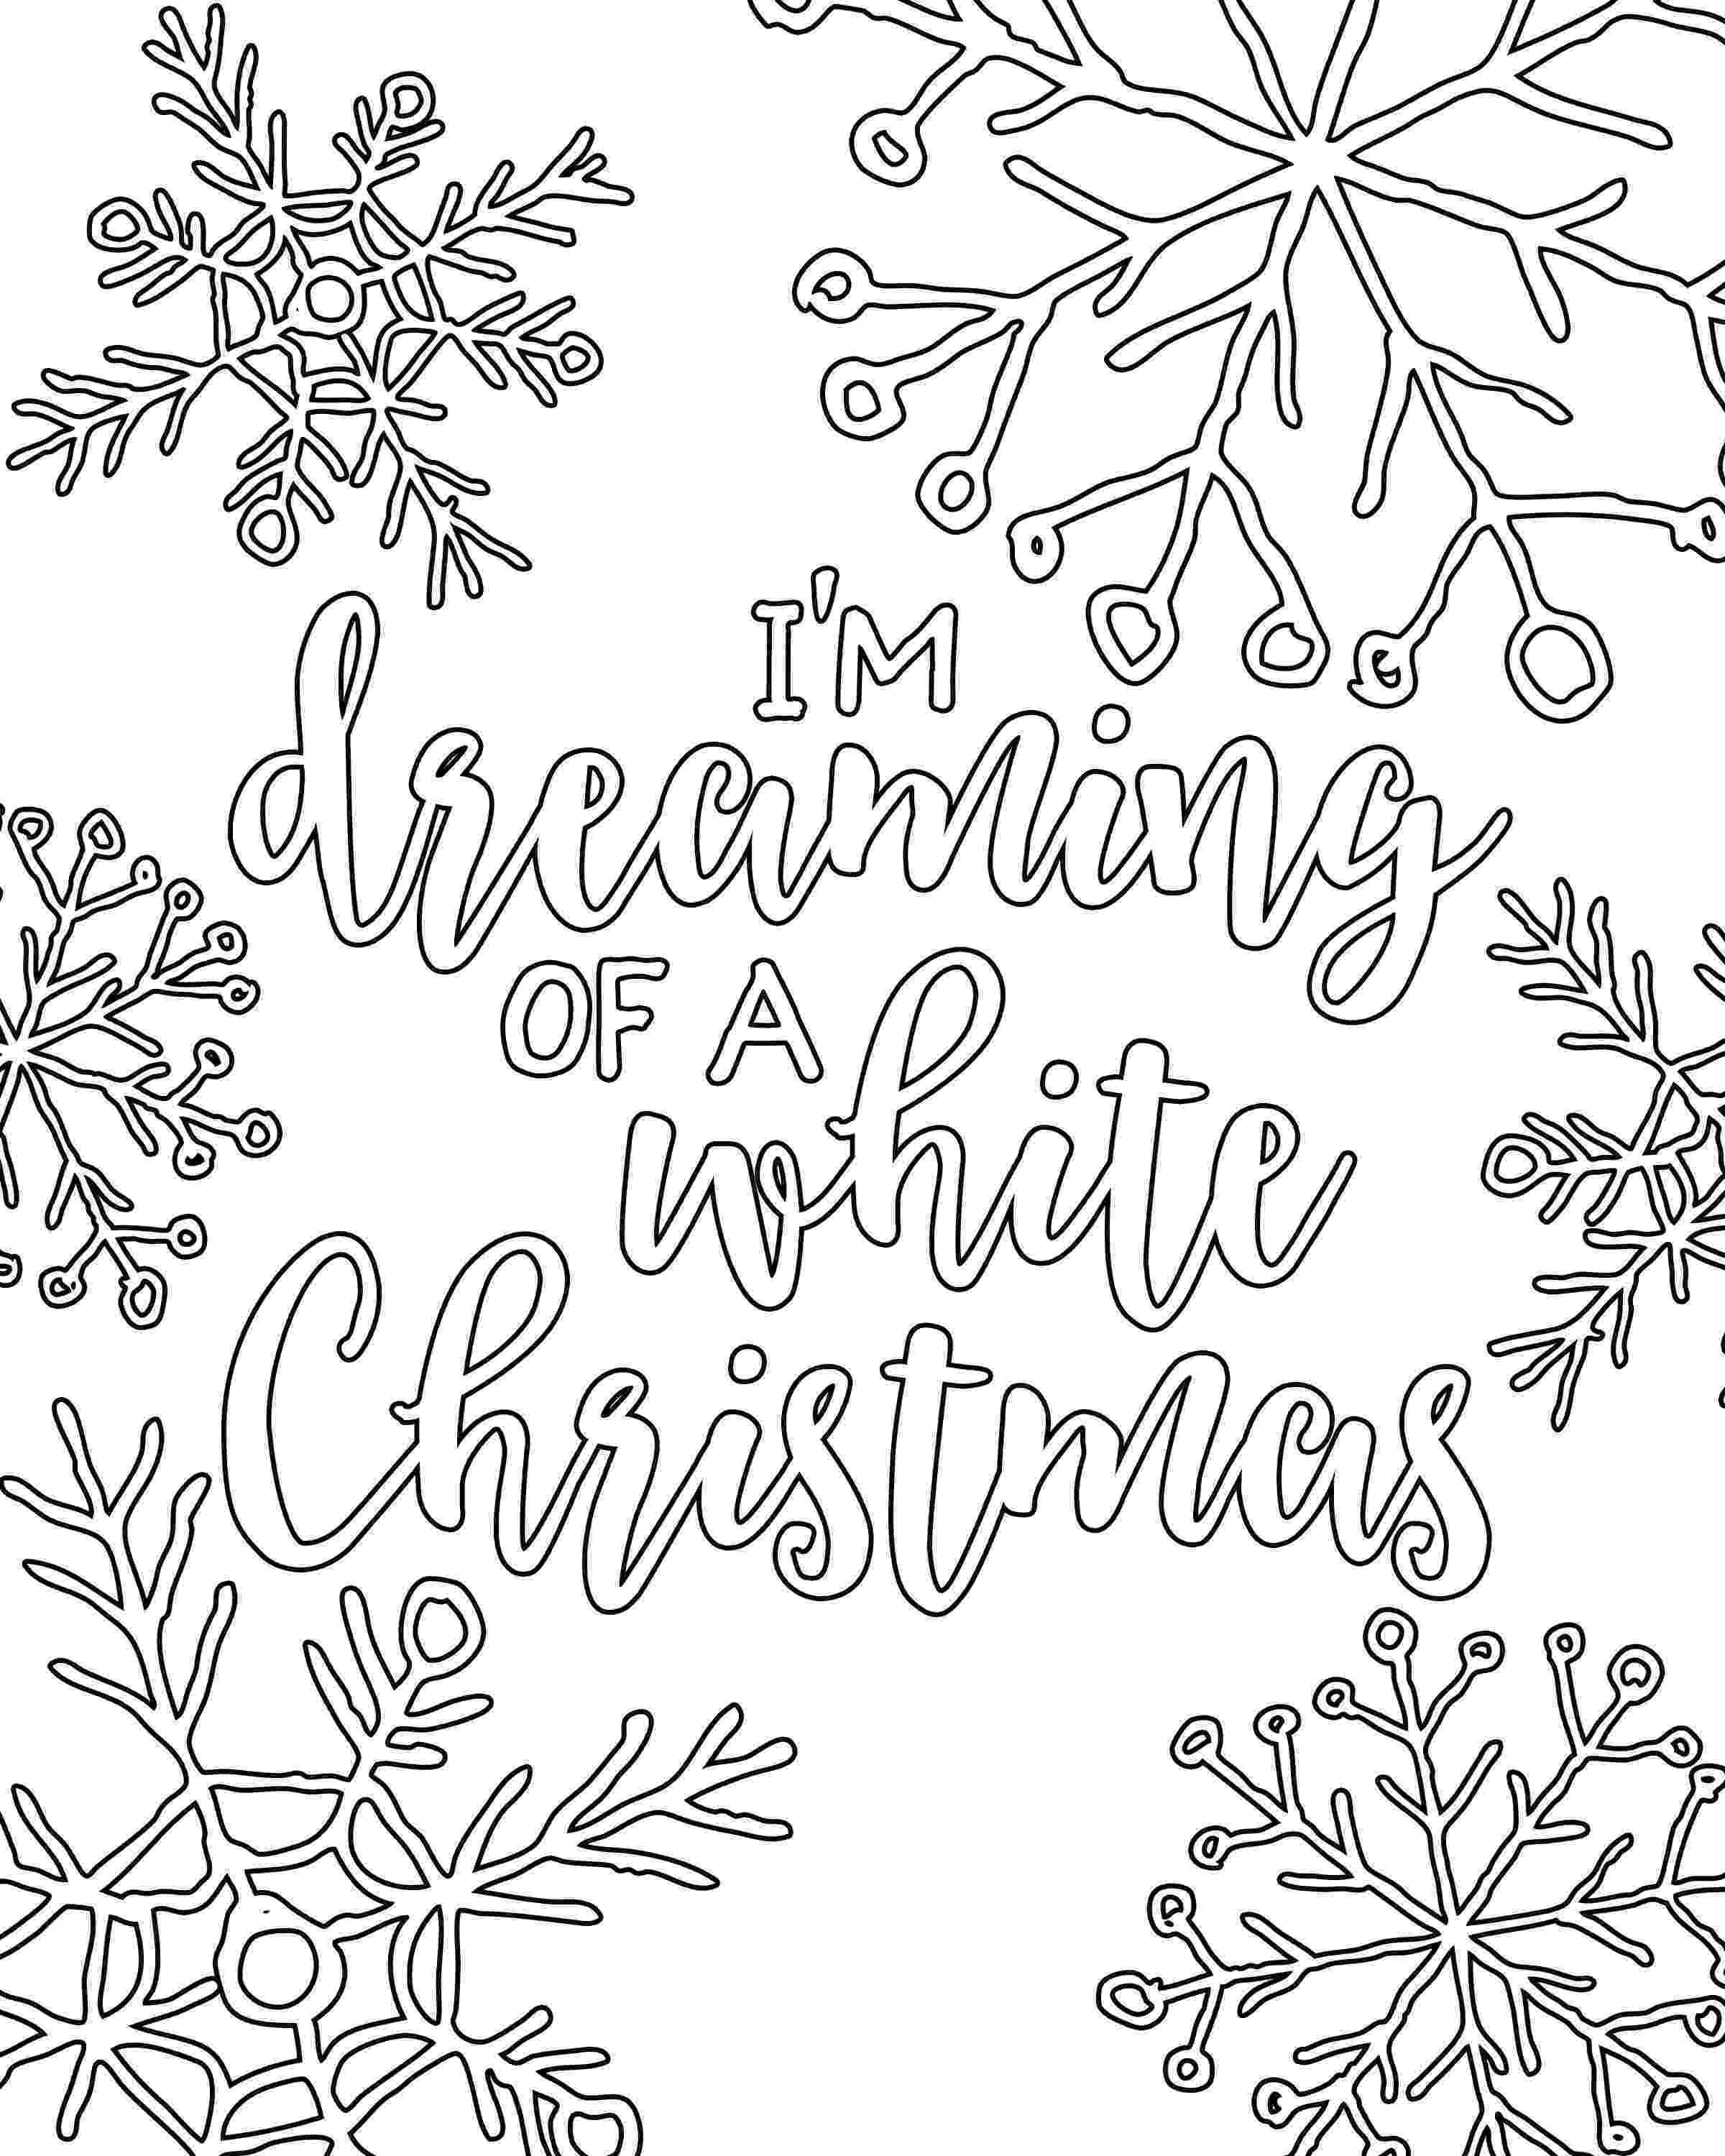 chirstmas coloring pages frozen christmas coloring page kristen hewitt pages coloring chirstmas